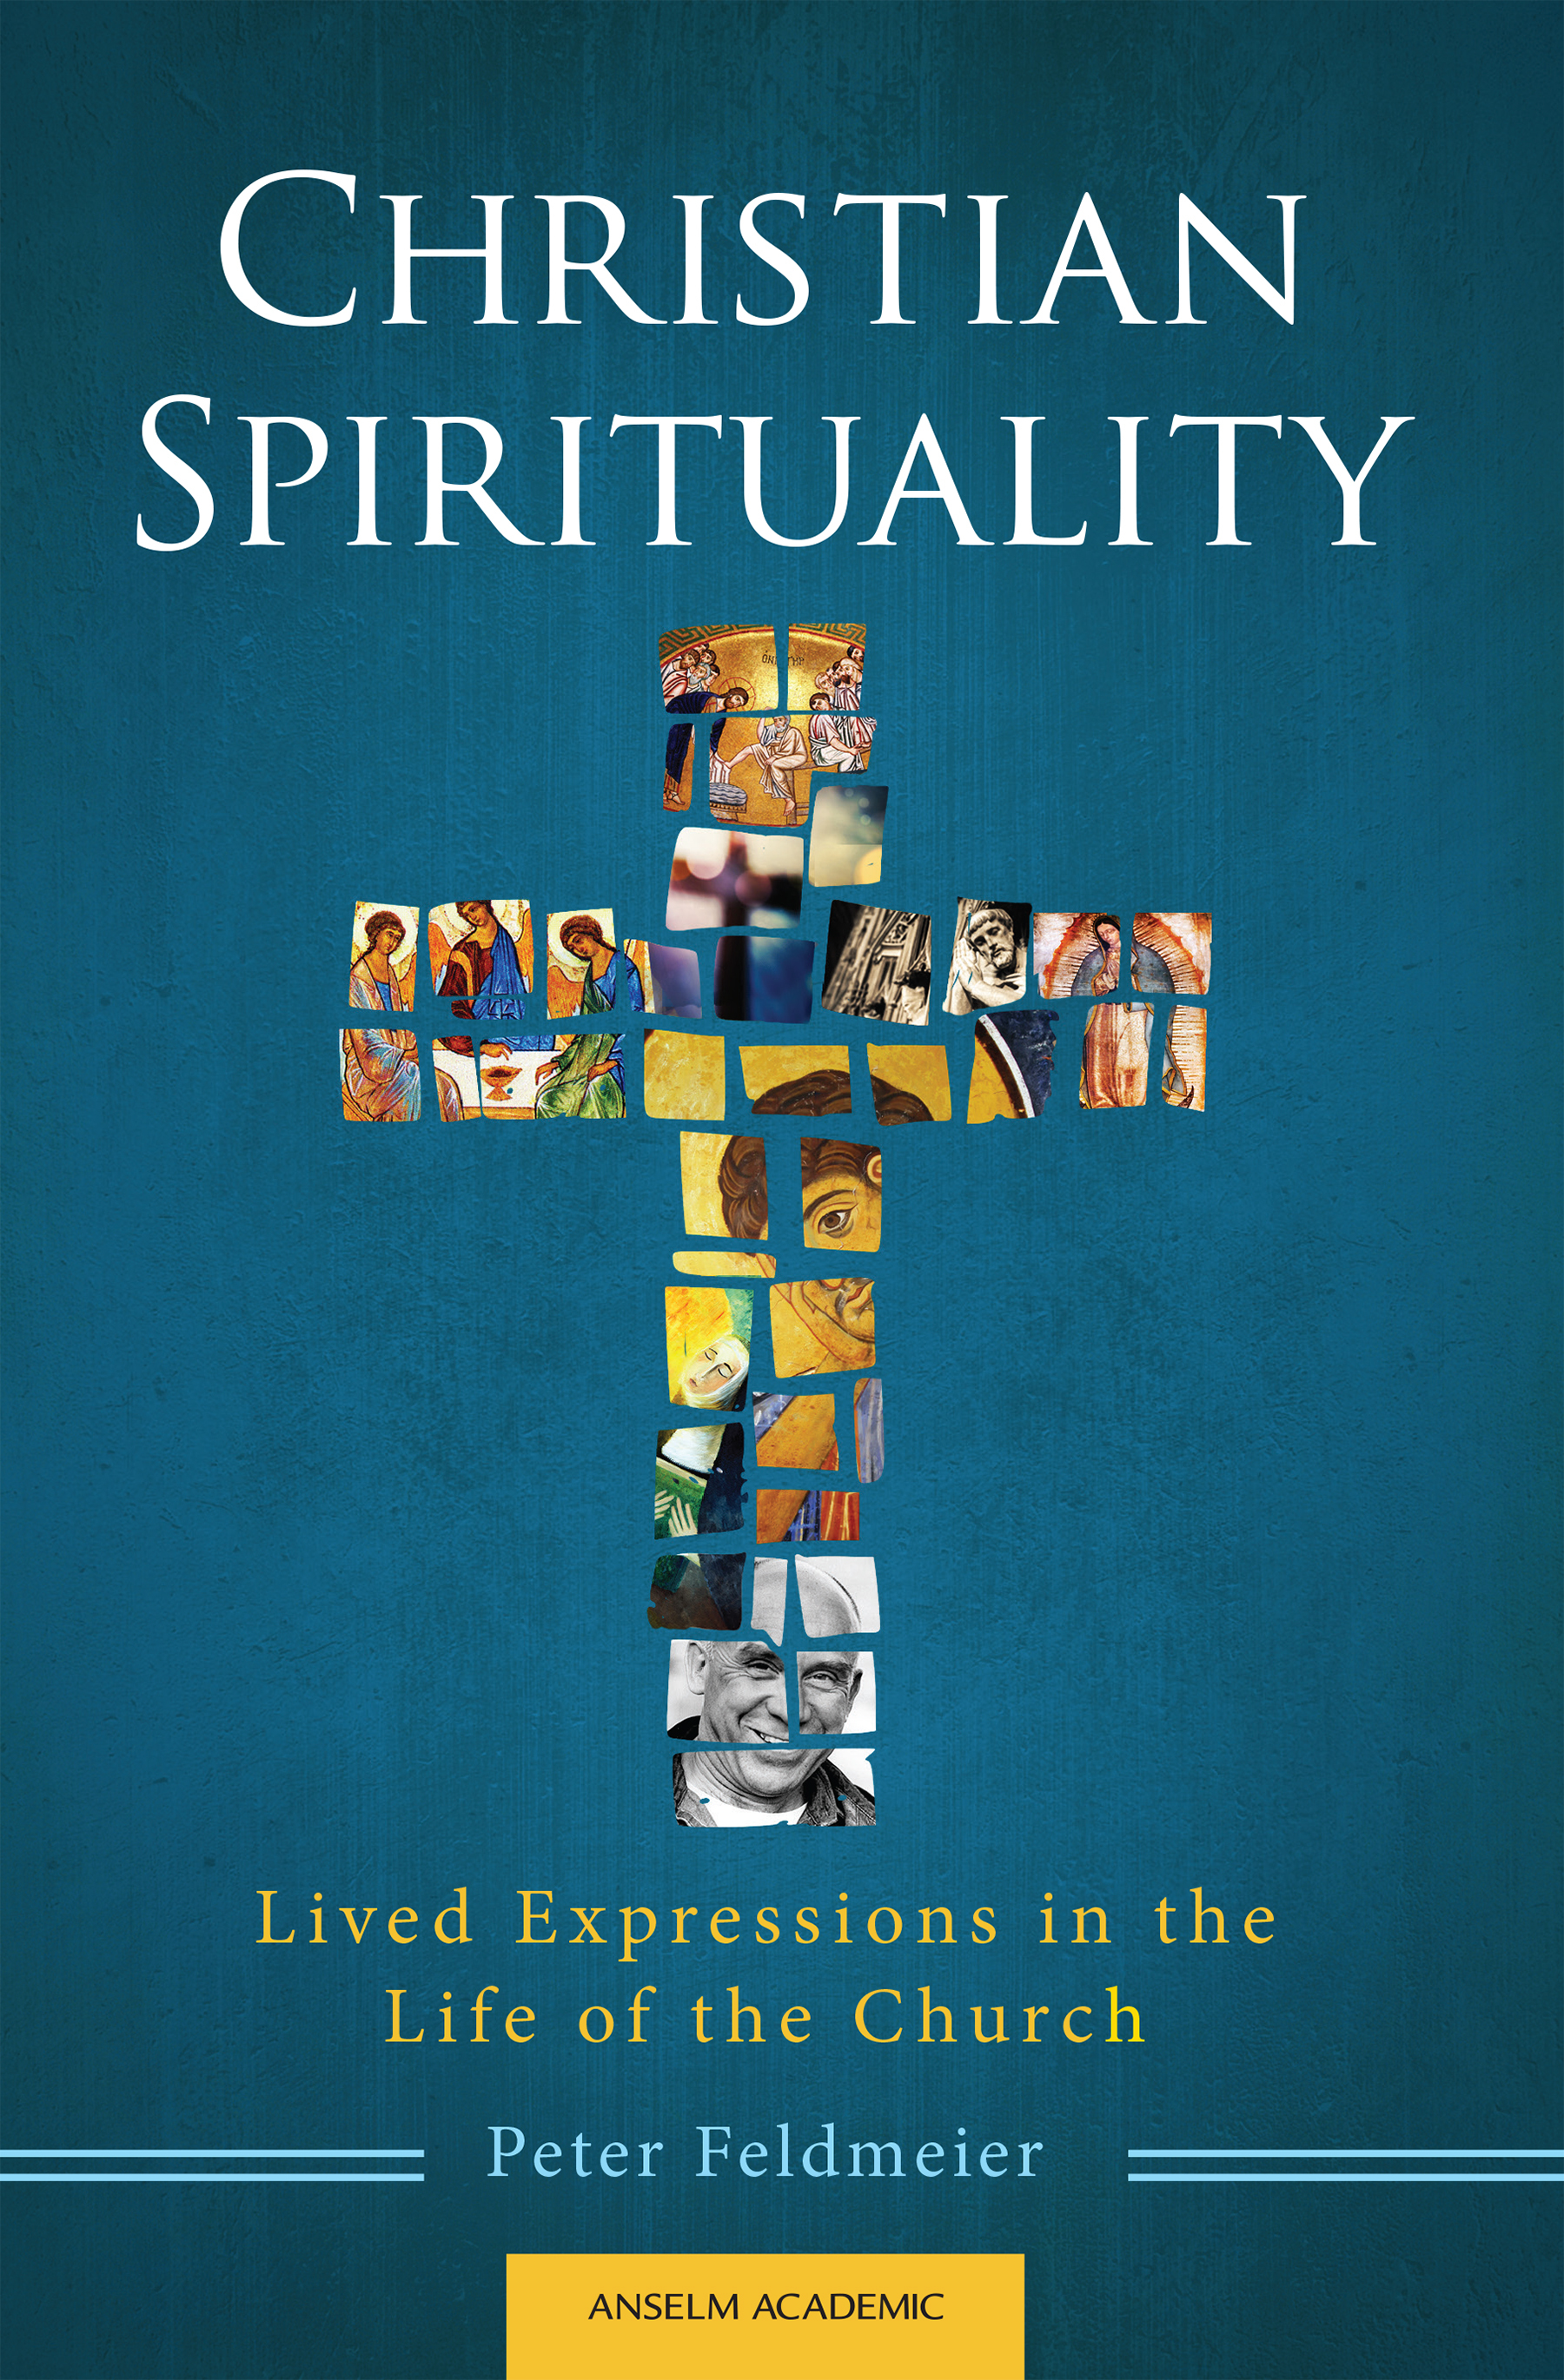 Christian Spirituality: Lived Expressions in the Life of the Church